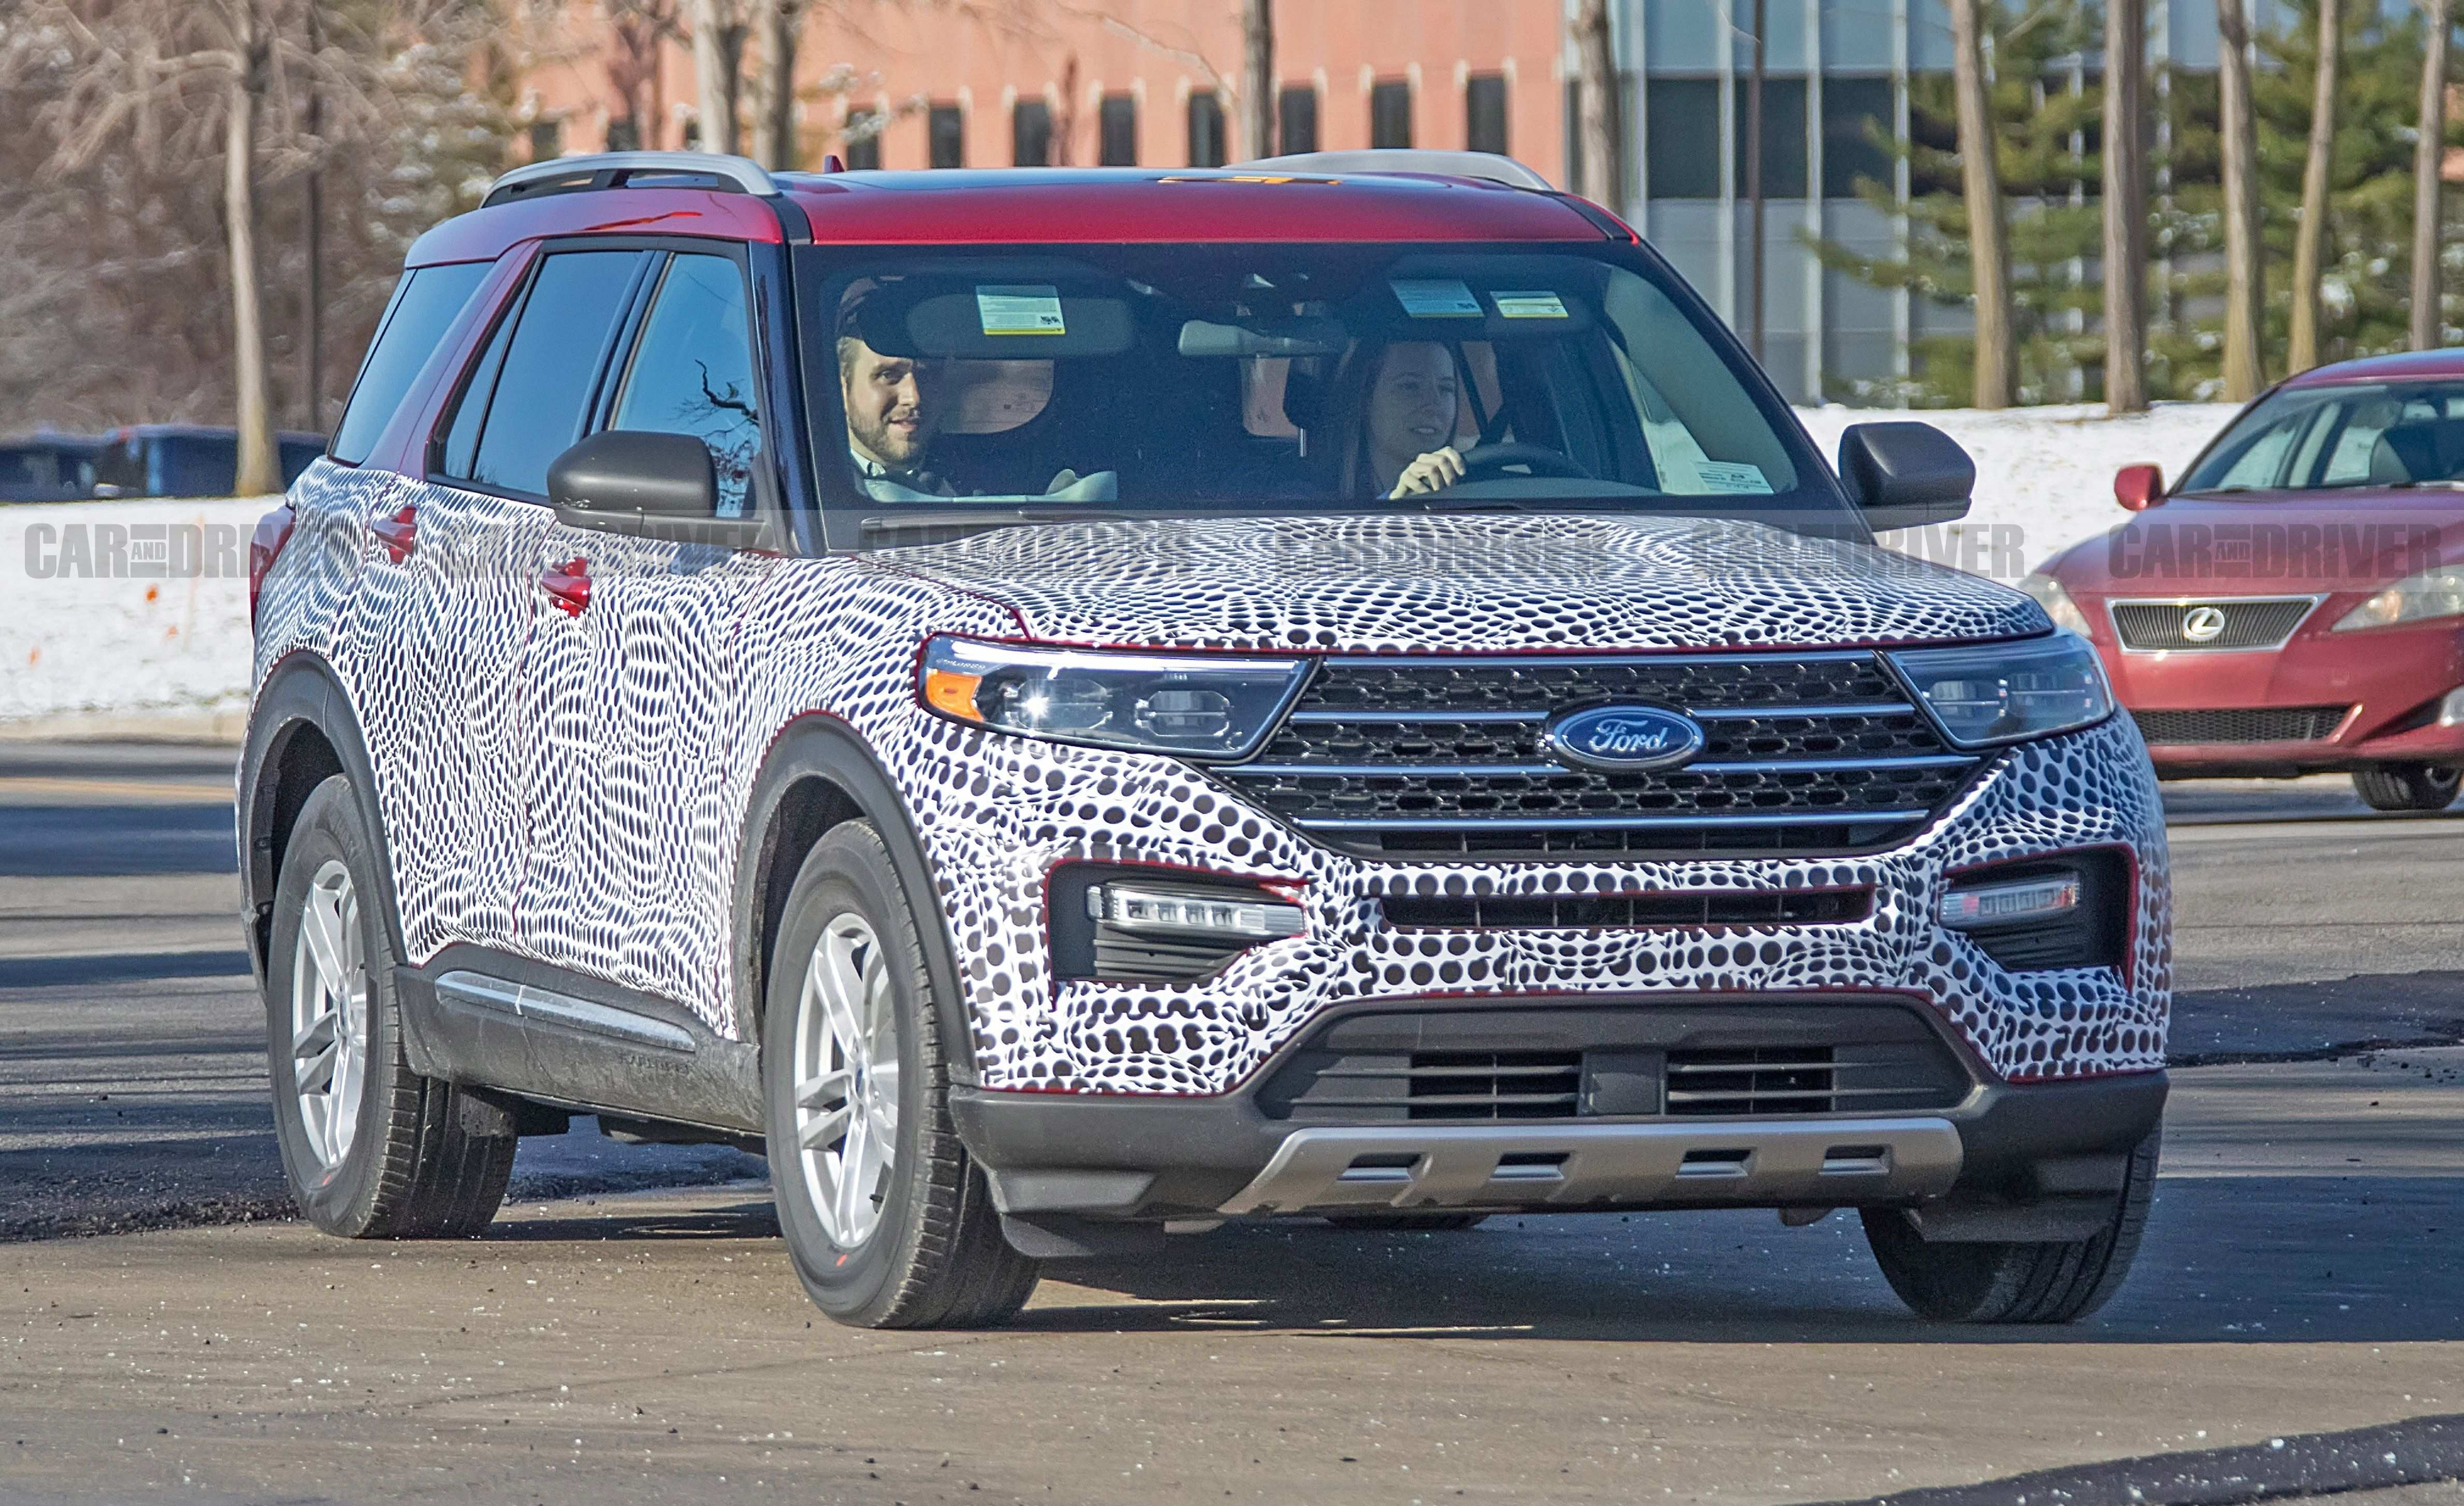 82 All New Ford Usa Explorer 2020 Spy Shoot